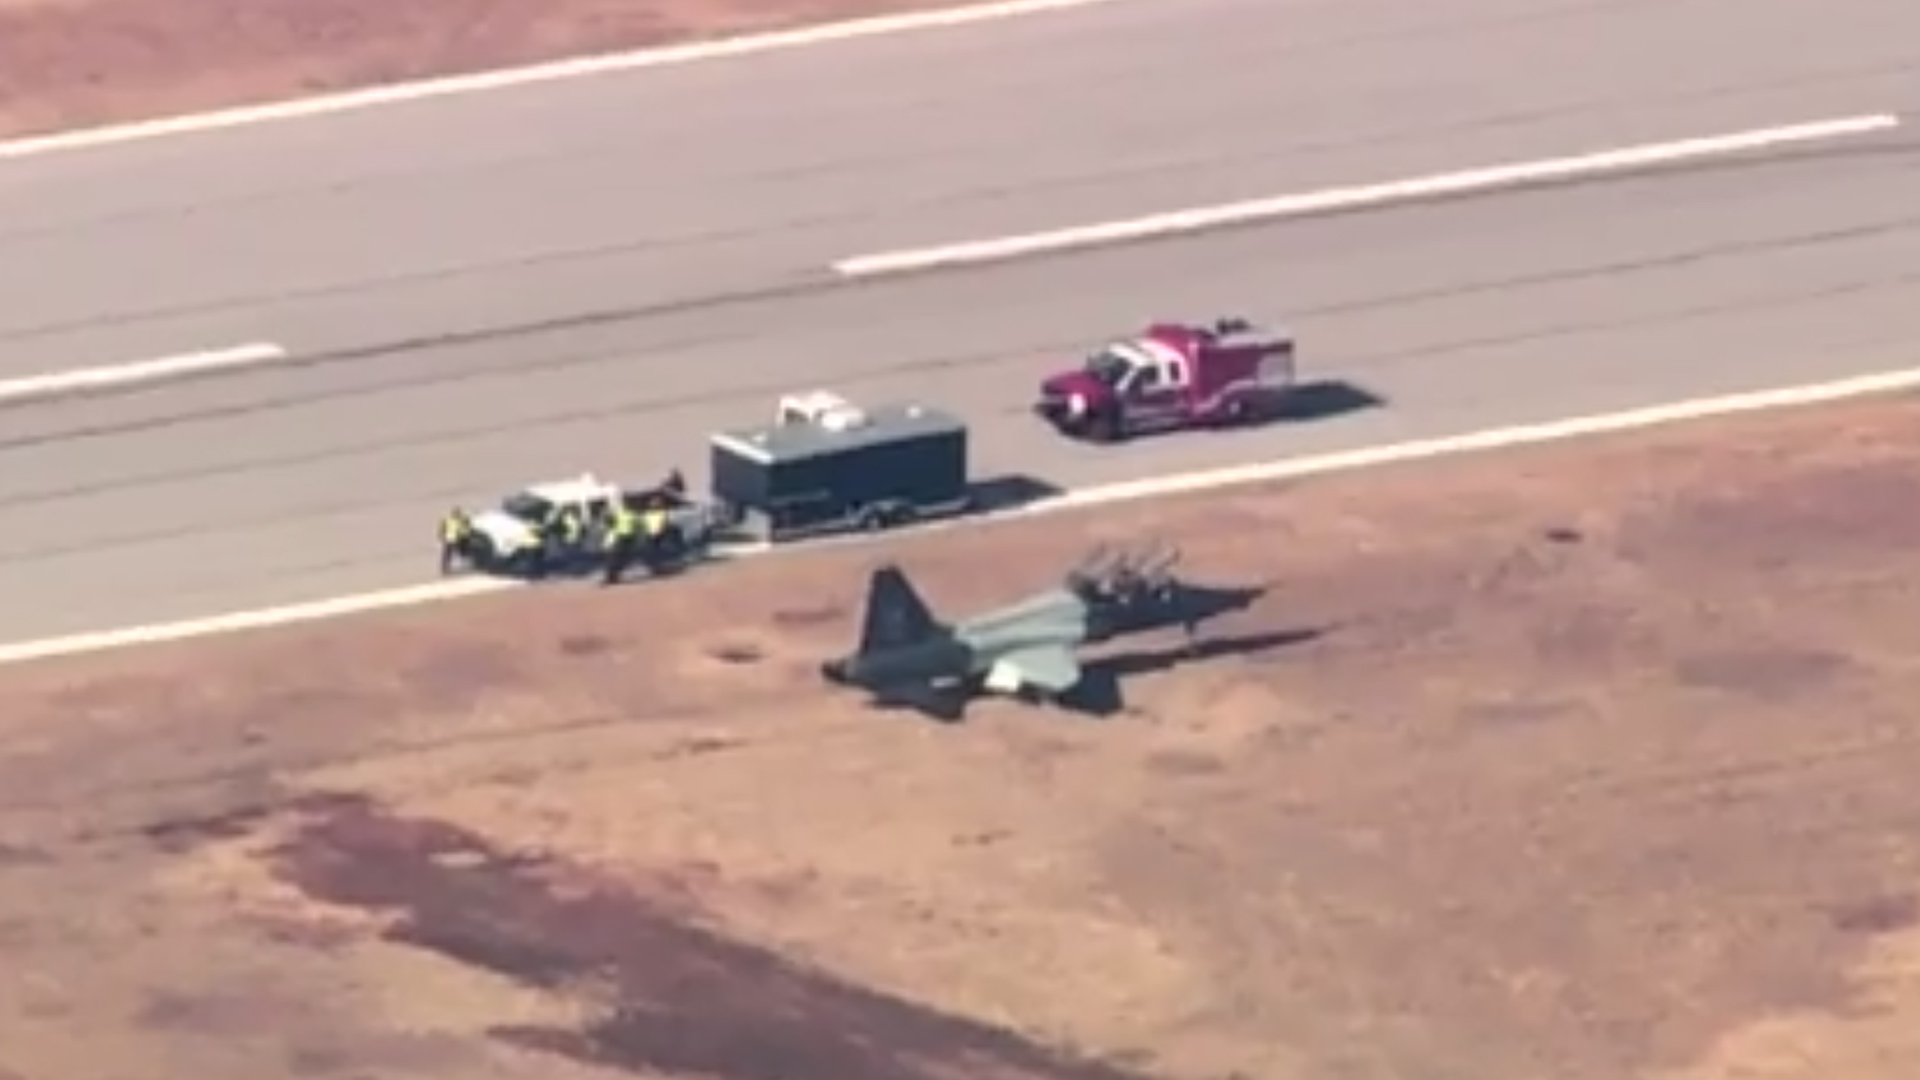 Two airmen were killed in a crash during a training exercise at Vance Air Force Base in Oklahoma on Nov. 21, 2019. (Credit: KOCO)